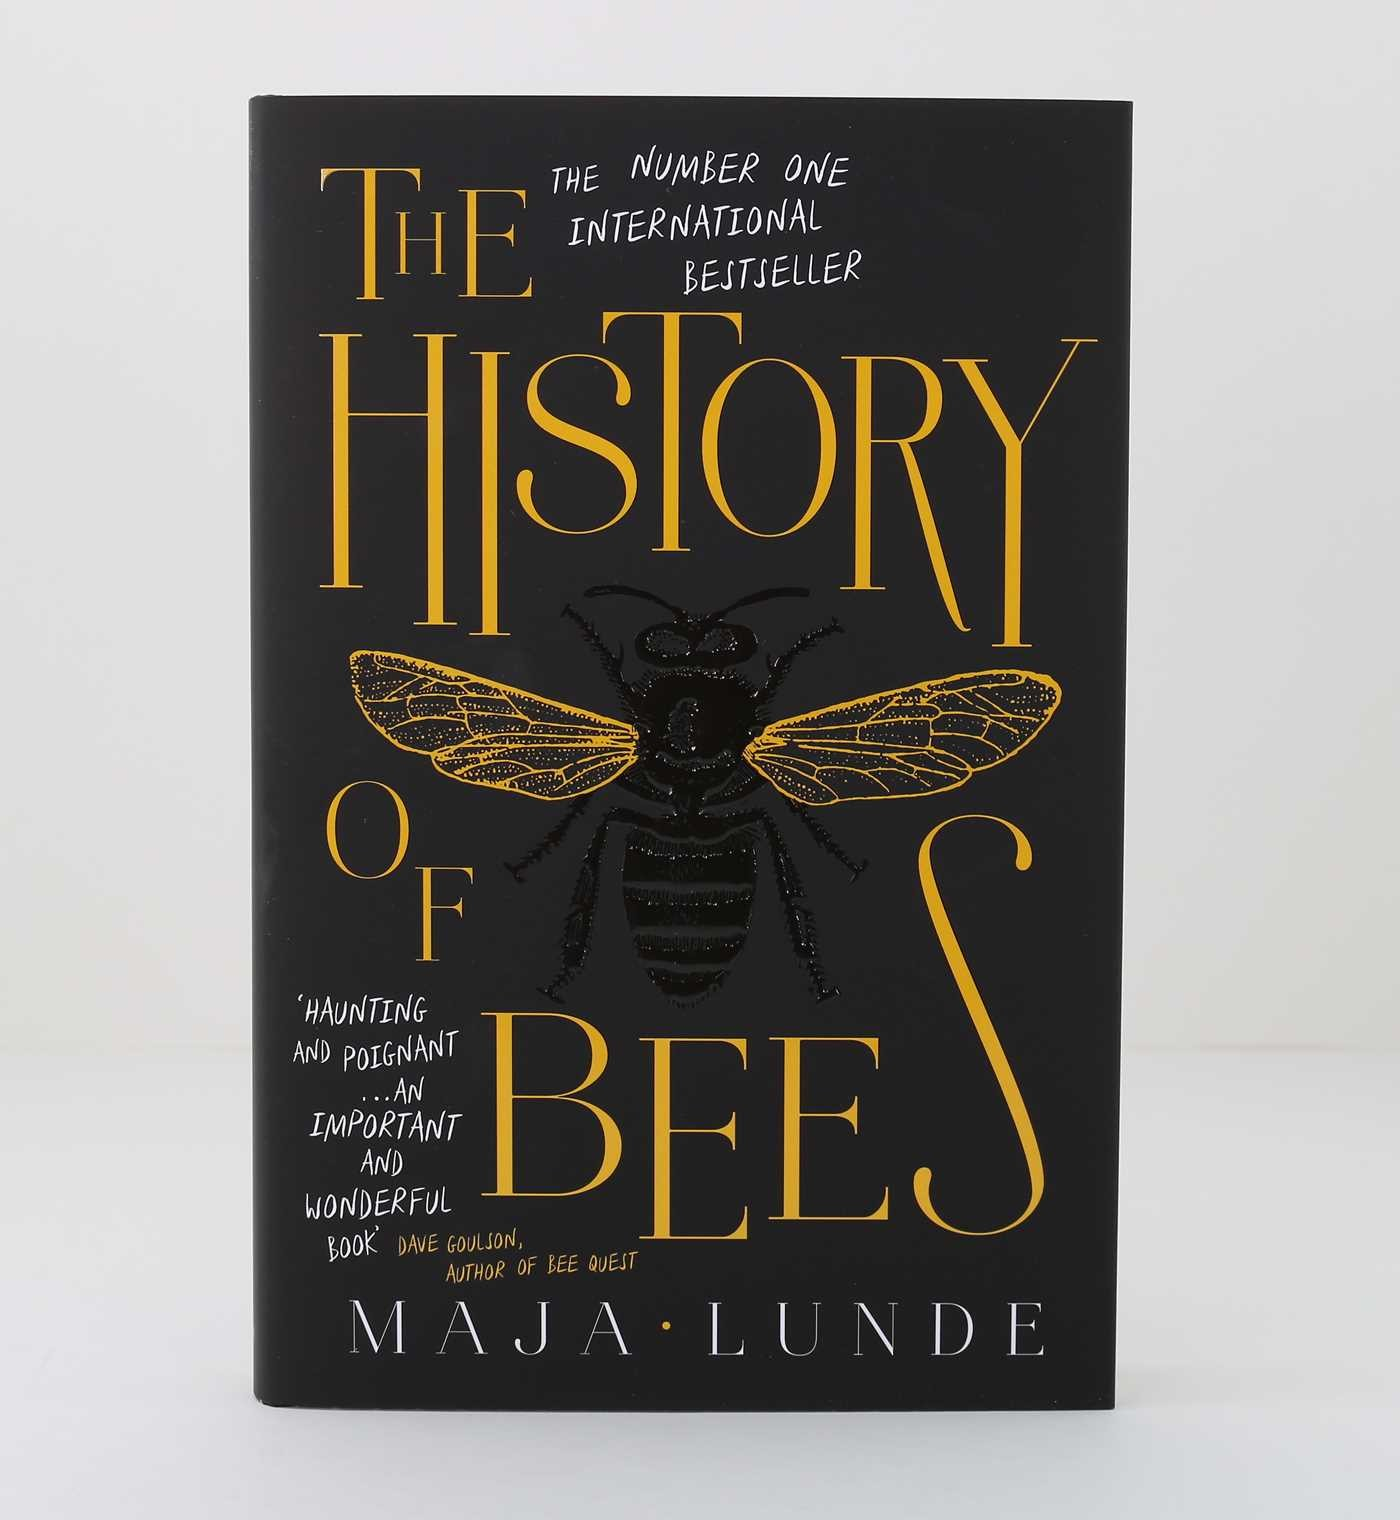 The history of bees 9781471162749.in04